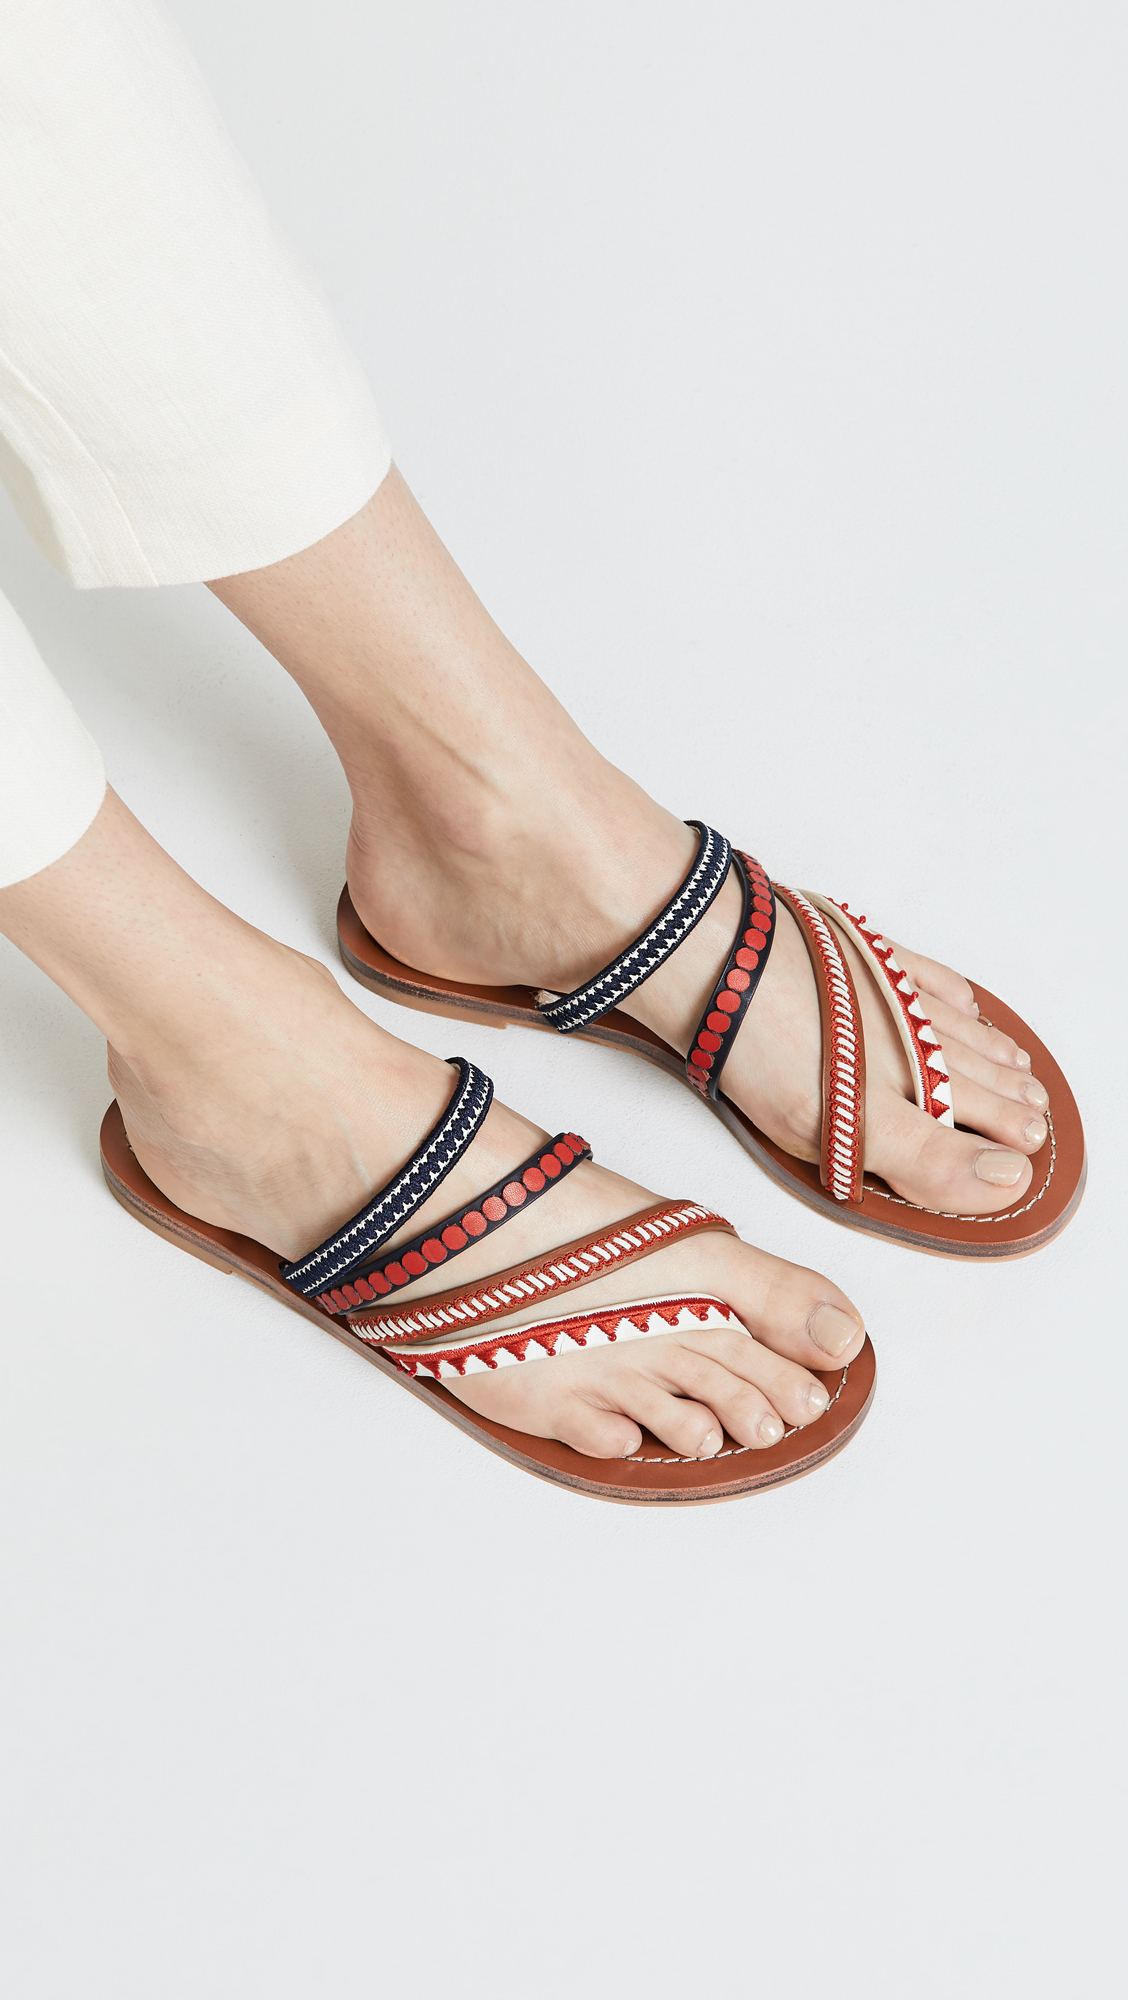 949aac9a656 Tory Burch Patos Embroidered Sandals